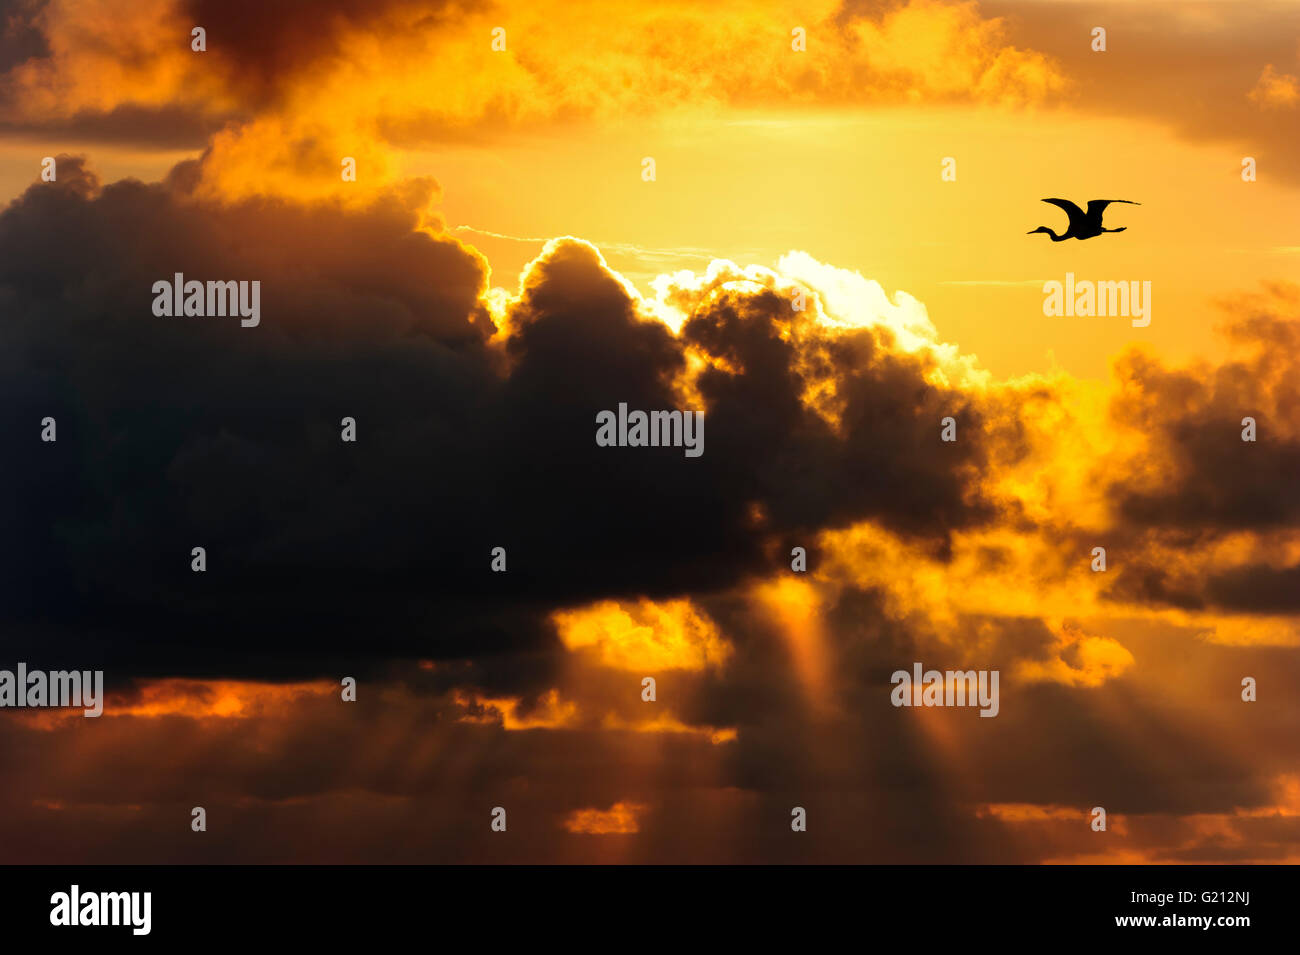 Clouds dark skies is a dramatic dark moody cloudscape with bird silhouetted against a bright sun filled sky. - Stock Image